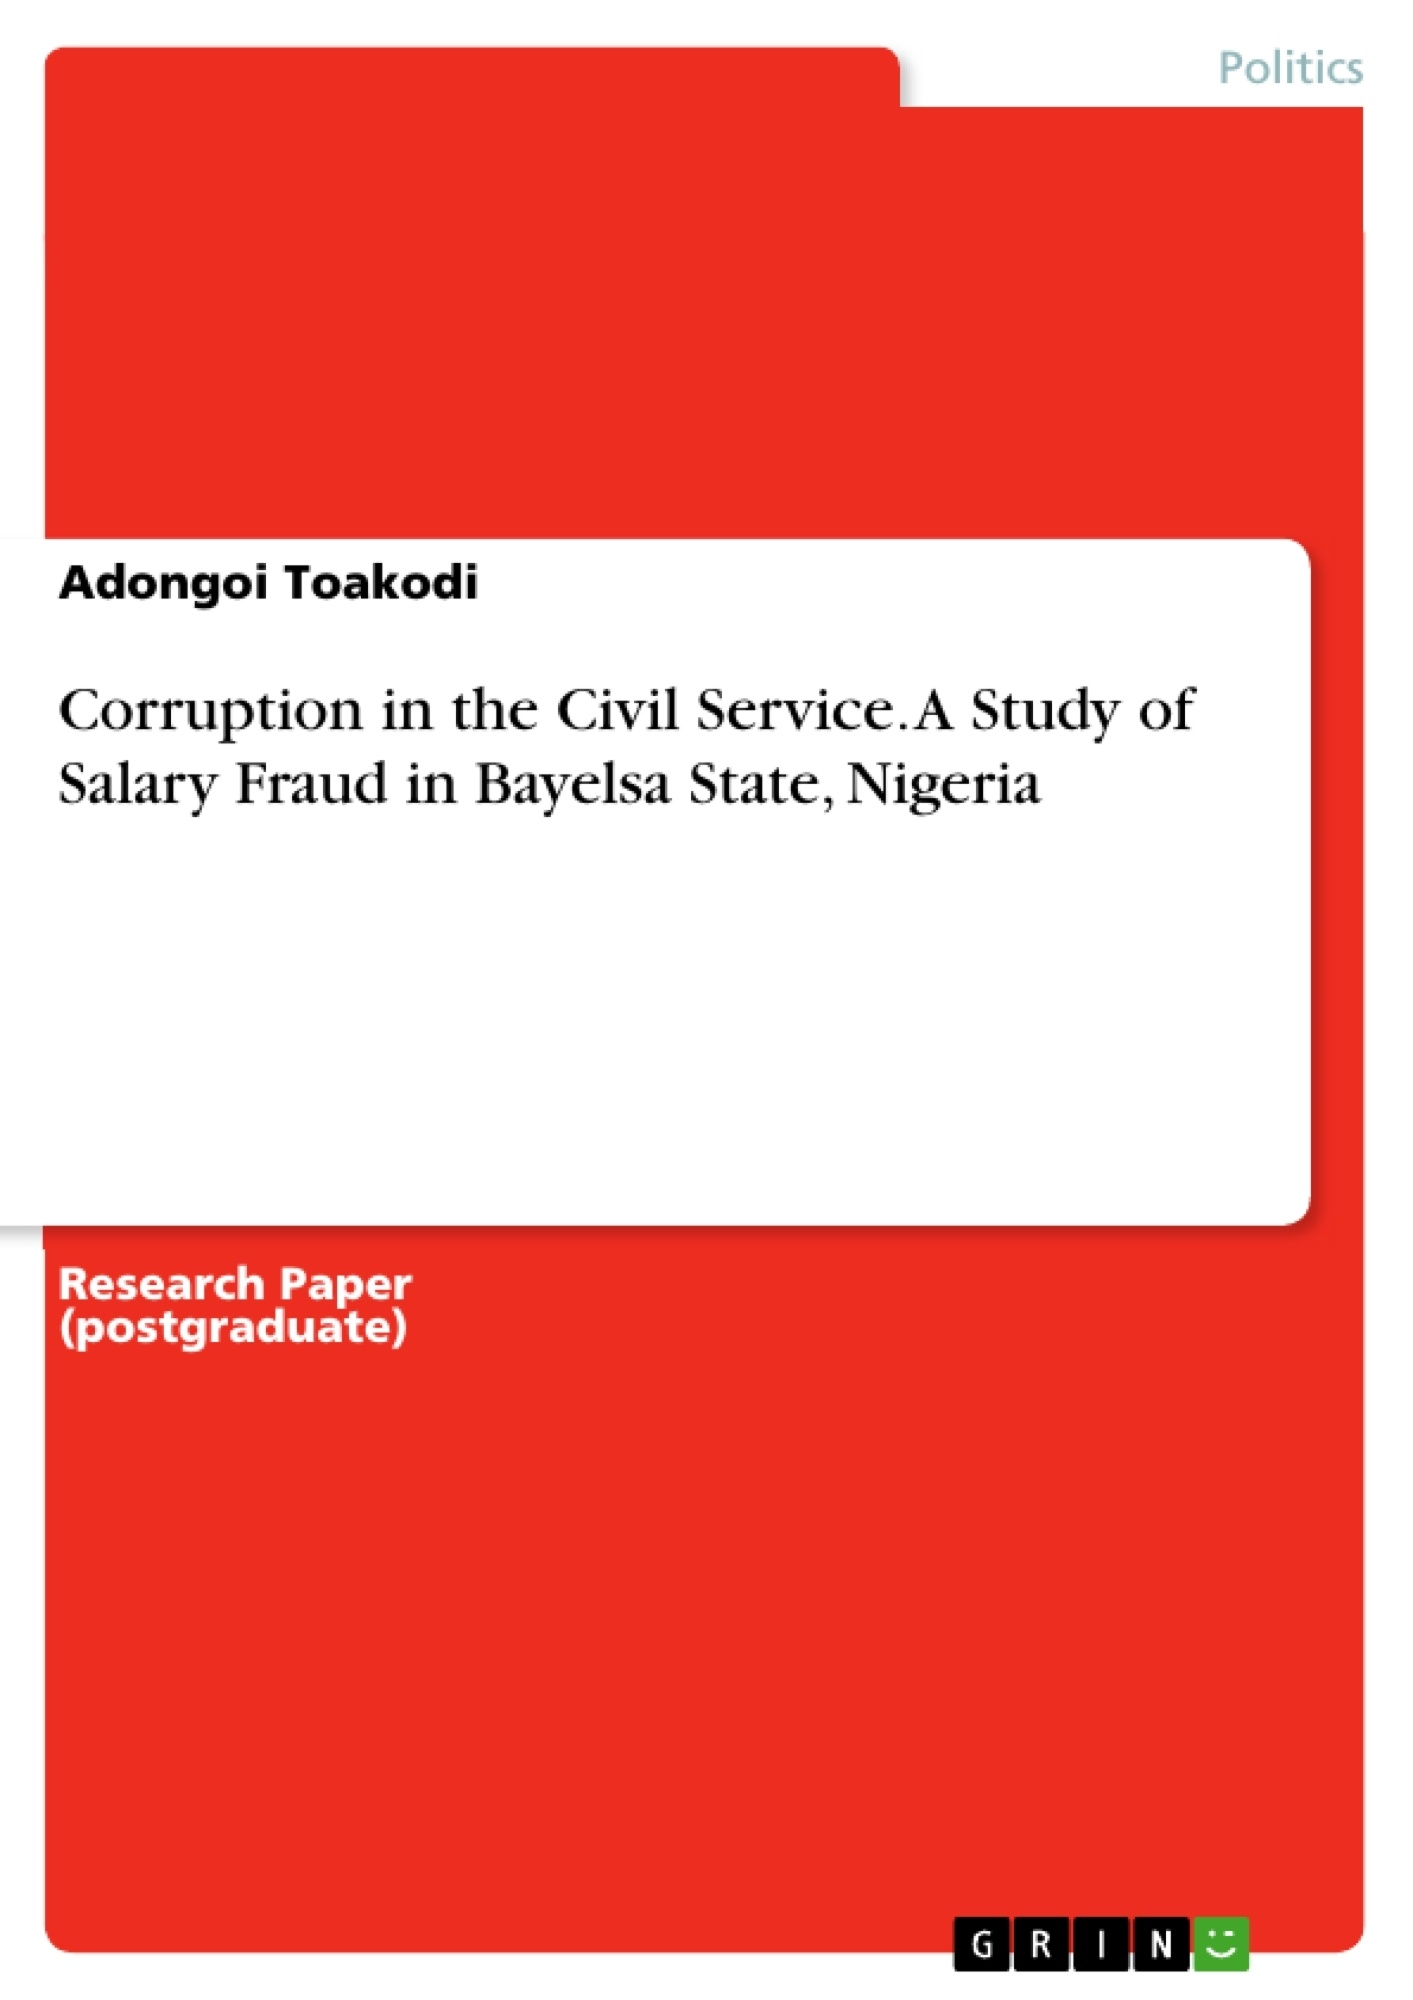 Title: Corruption in the Civil Service. A Study of Salary Fraud in Bayelsa State, Nigeria